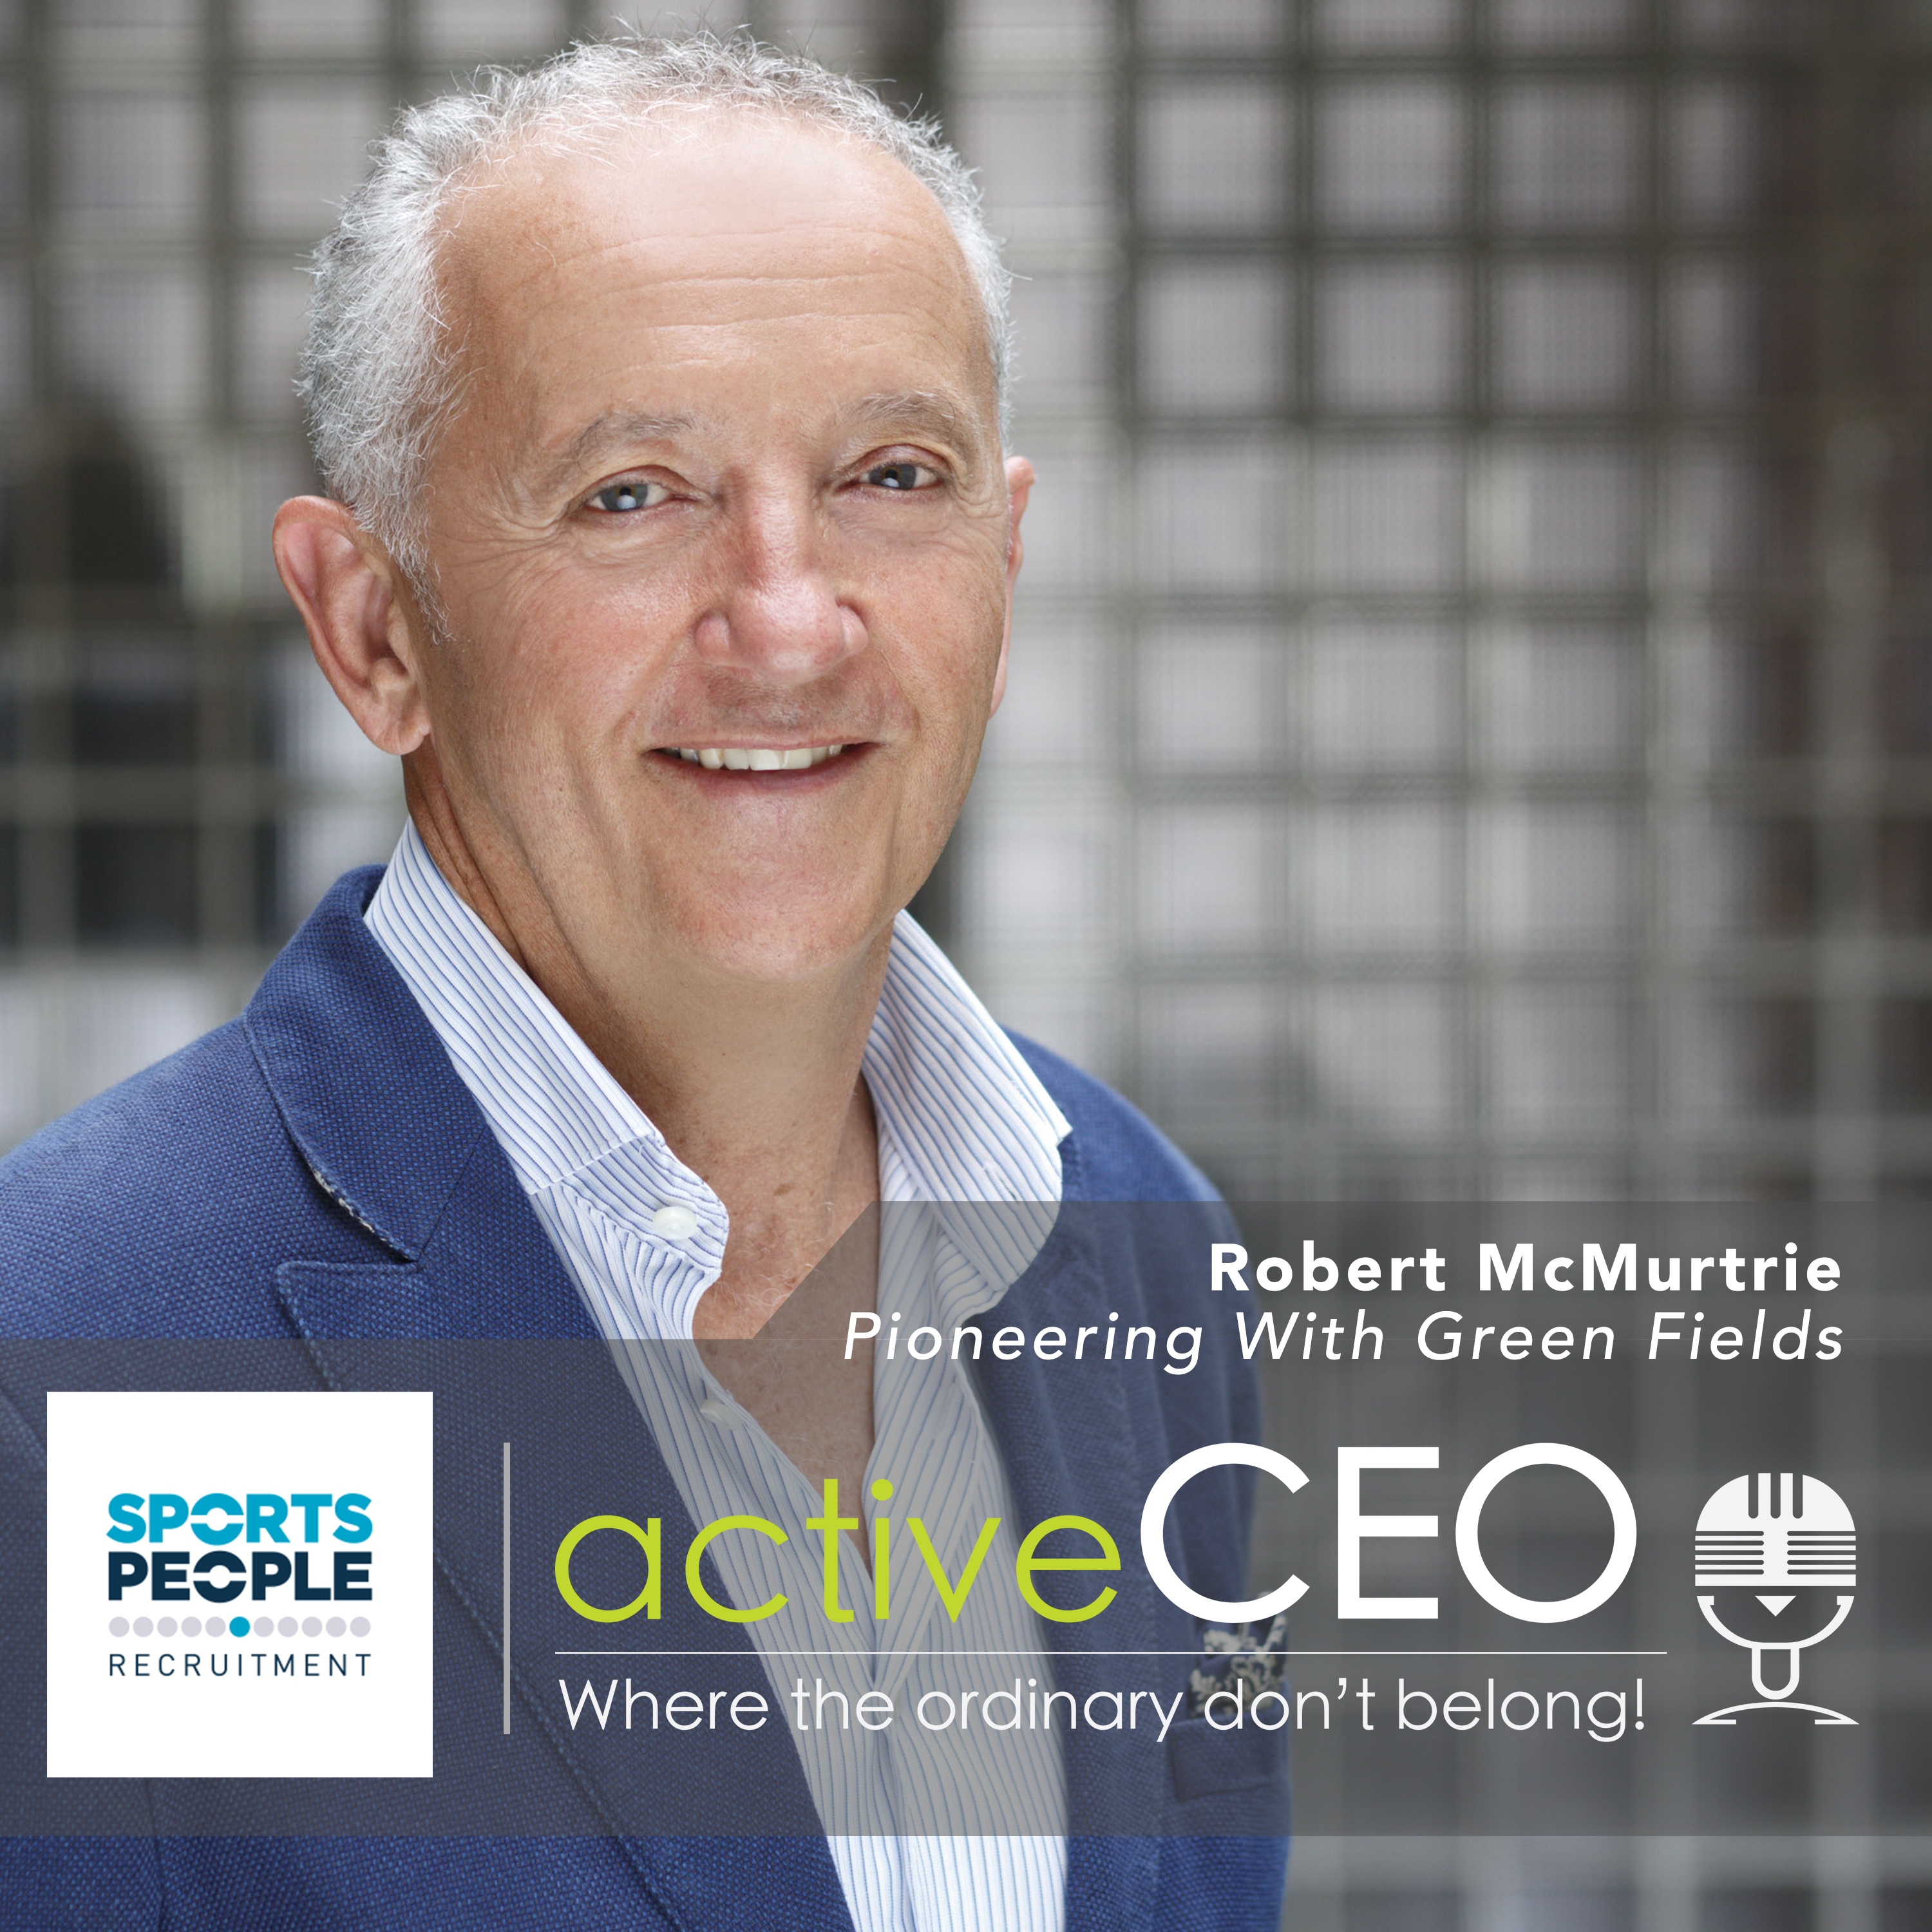 active CEO Podcast Robert McMurtrie (Sports People Recruitment) – Pioneering With Green Fields